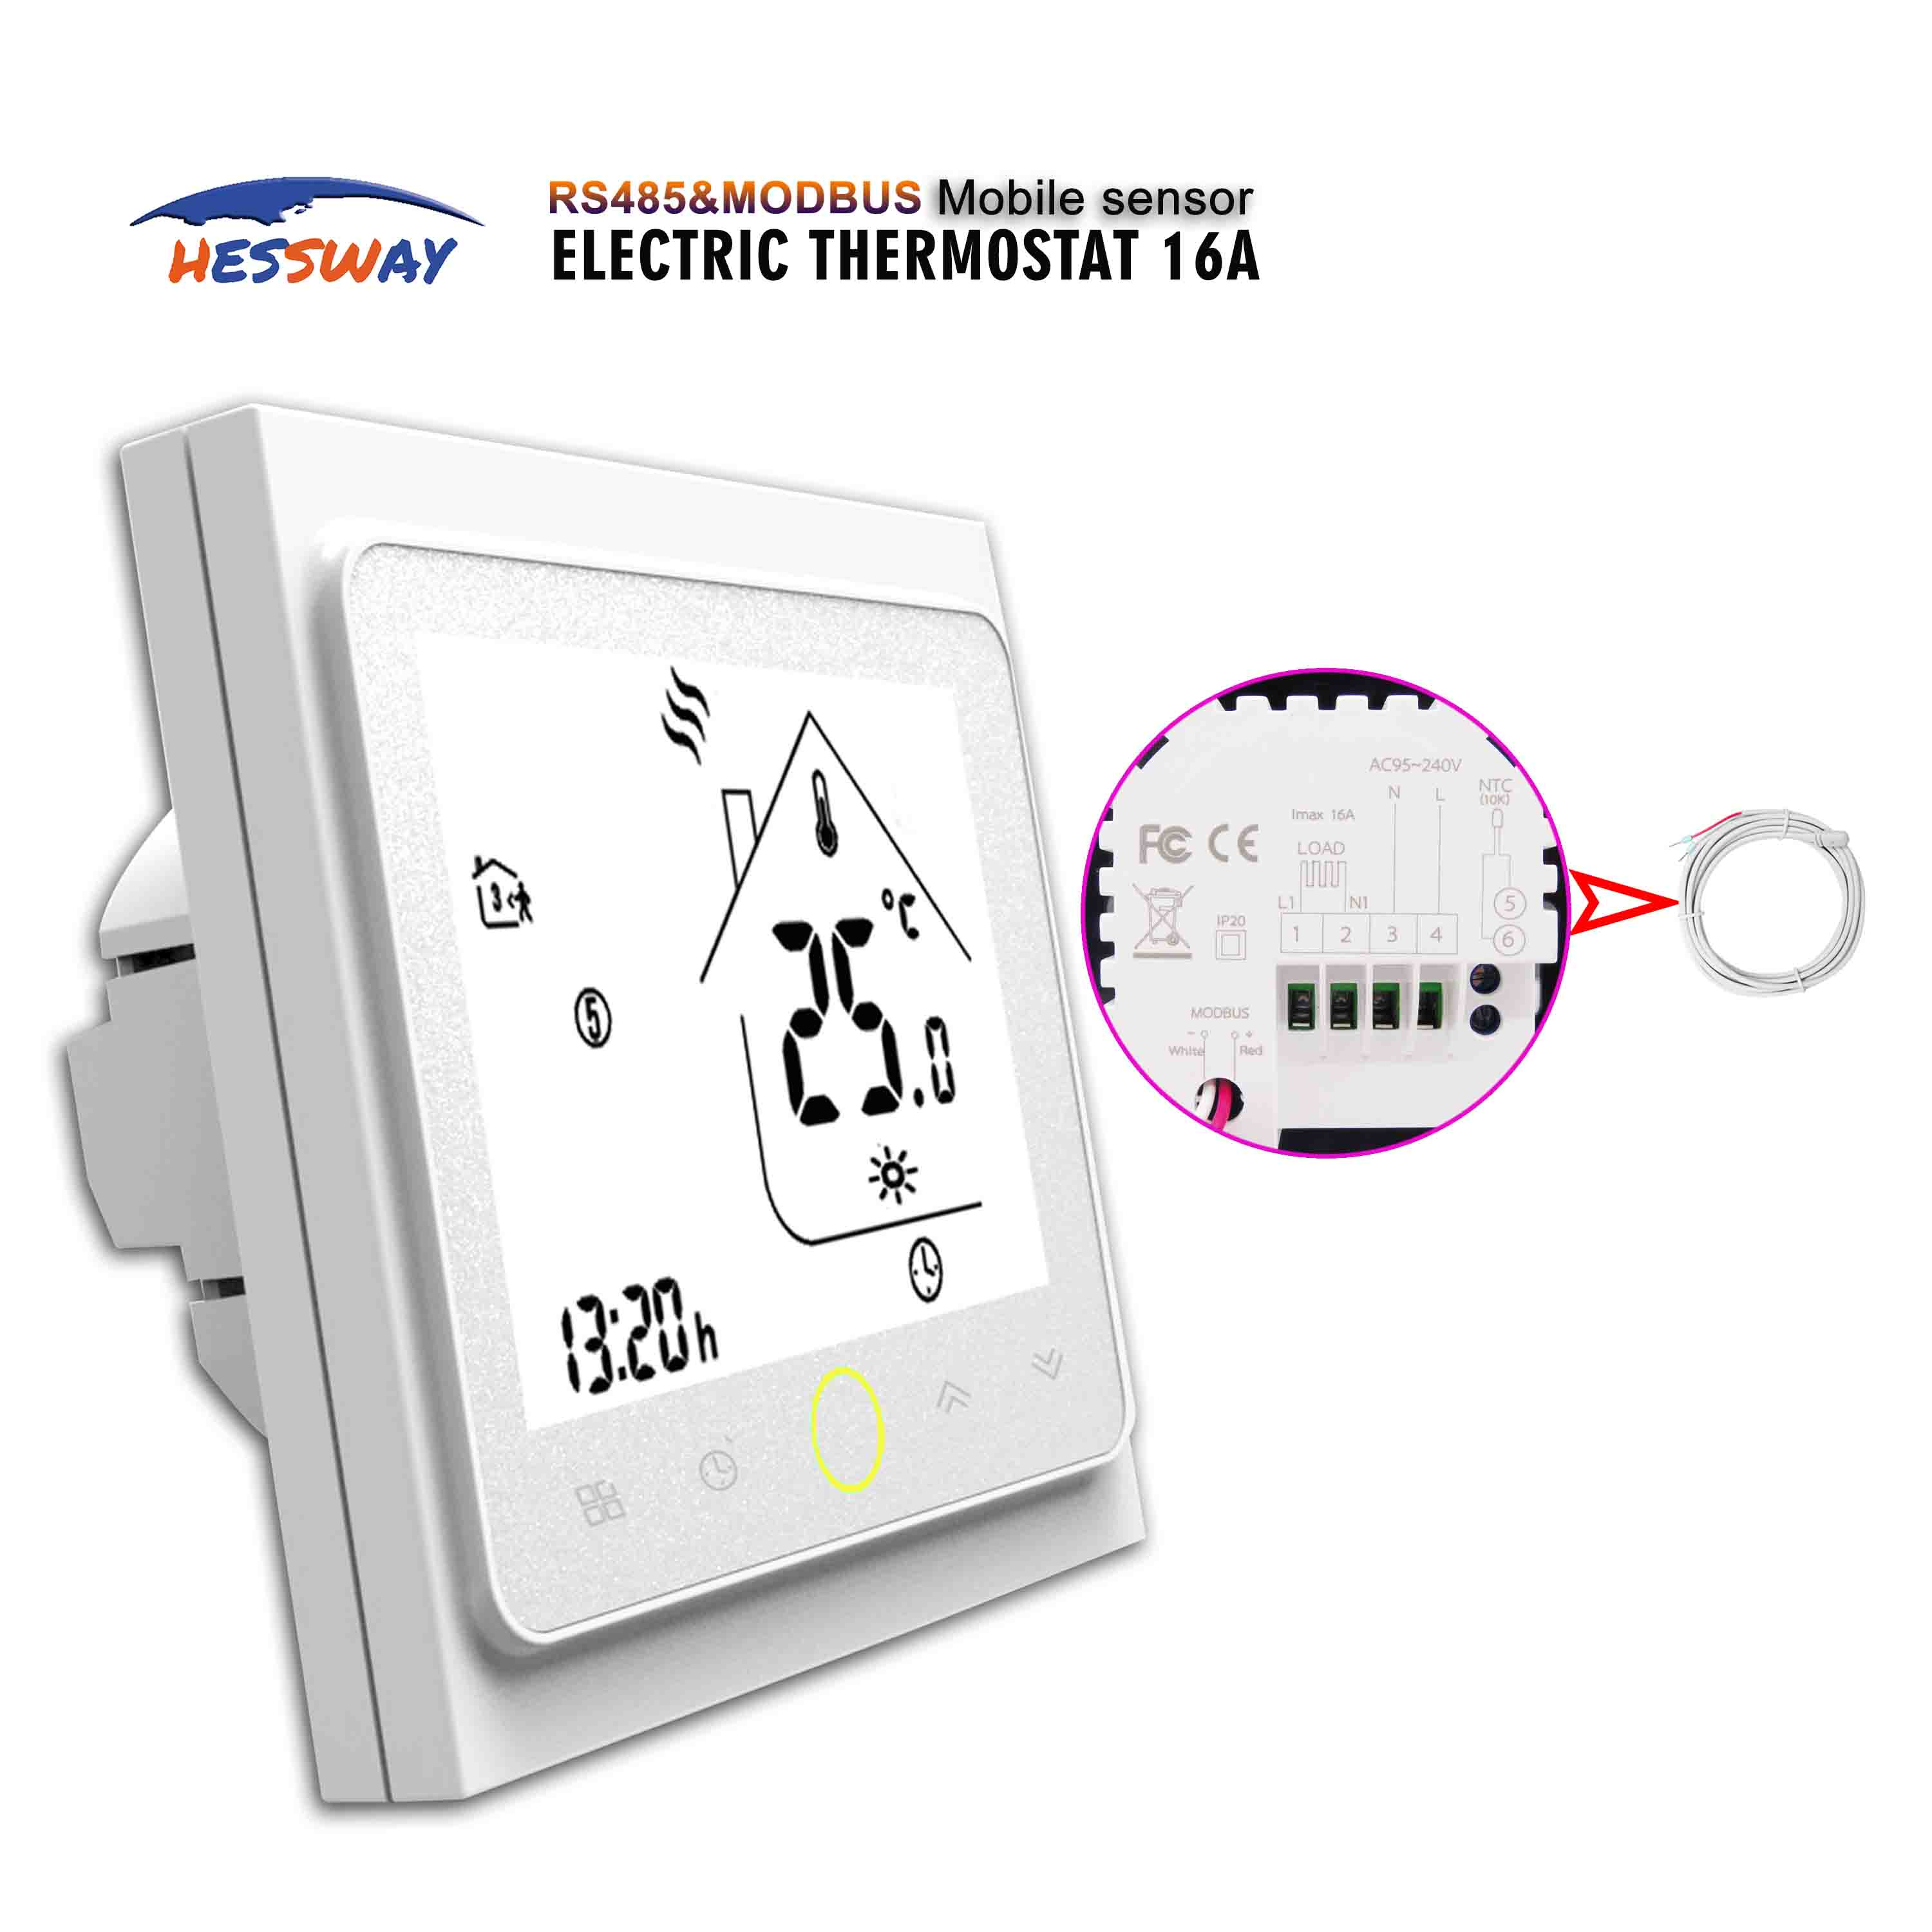 Promote£RS485&MODUS digital touch screen thermostat heating for dual sensor electric heat 16A